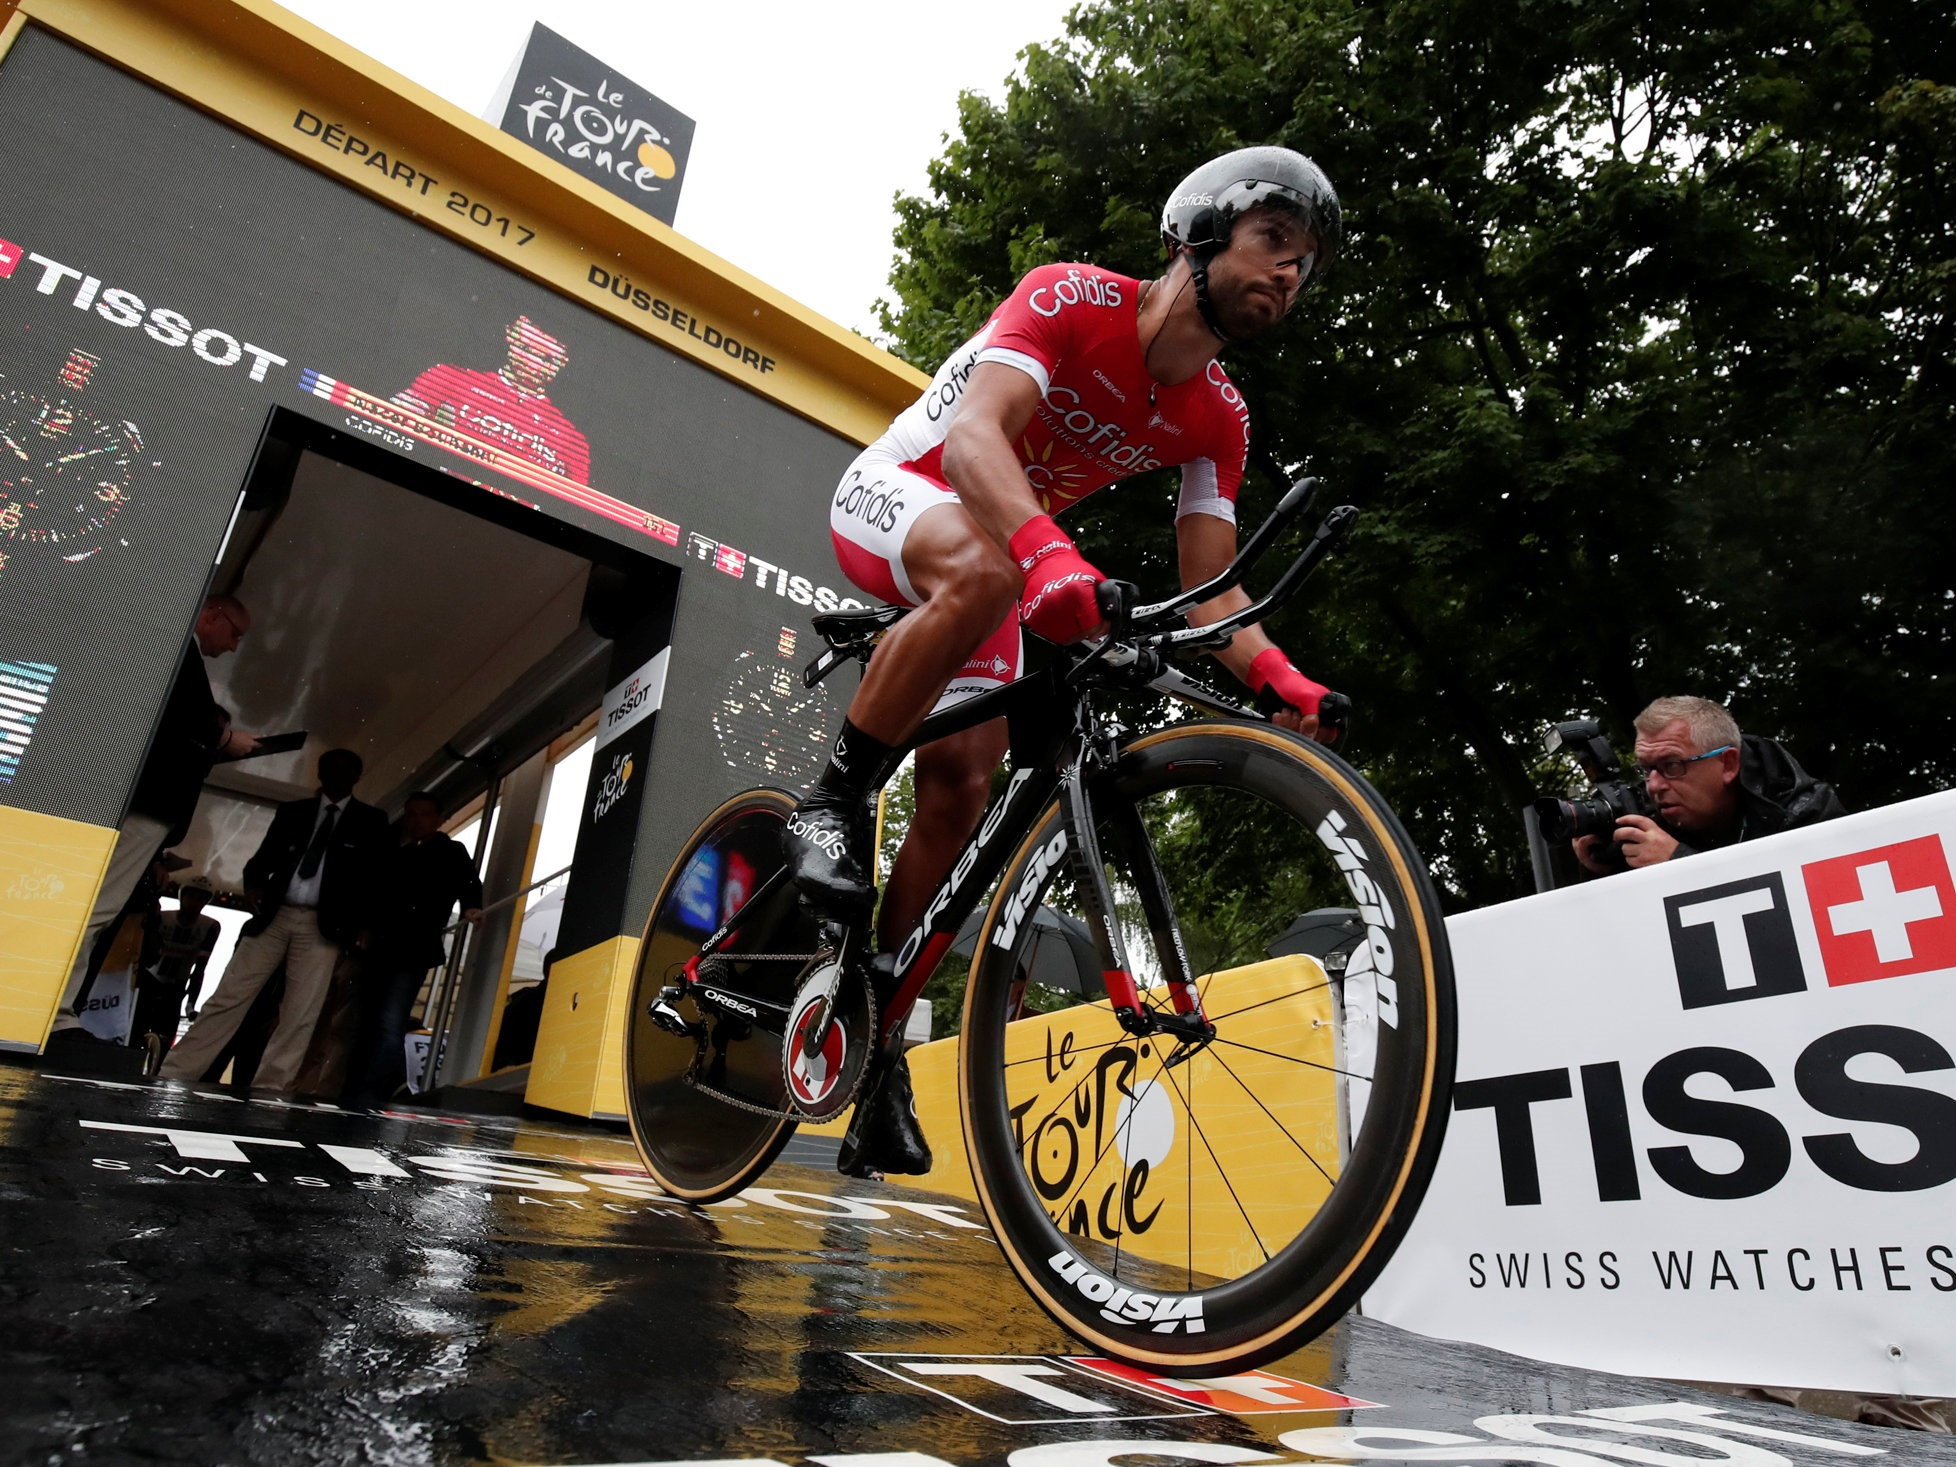 Tour de france stage 16 betting preview esc 2021 betting odds